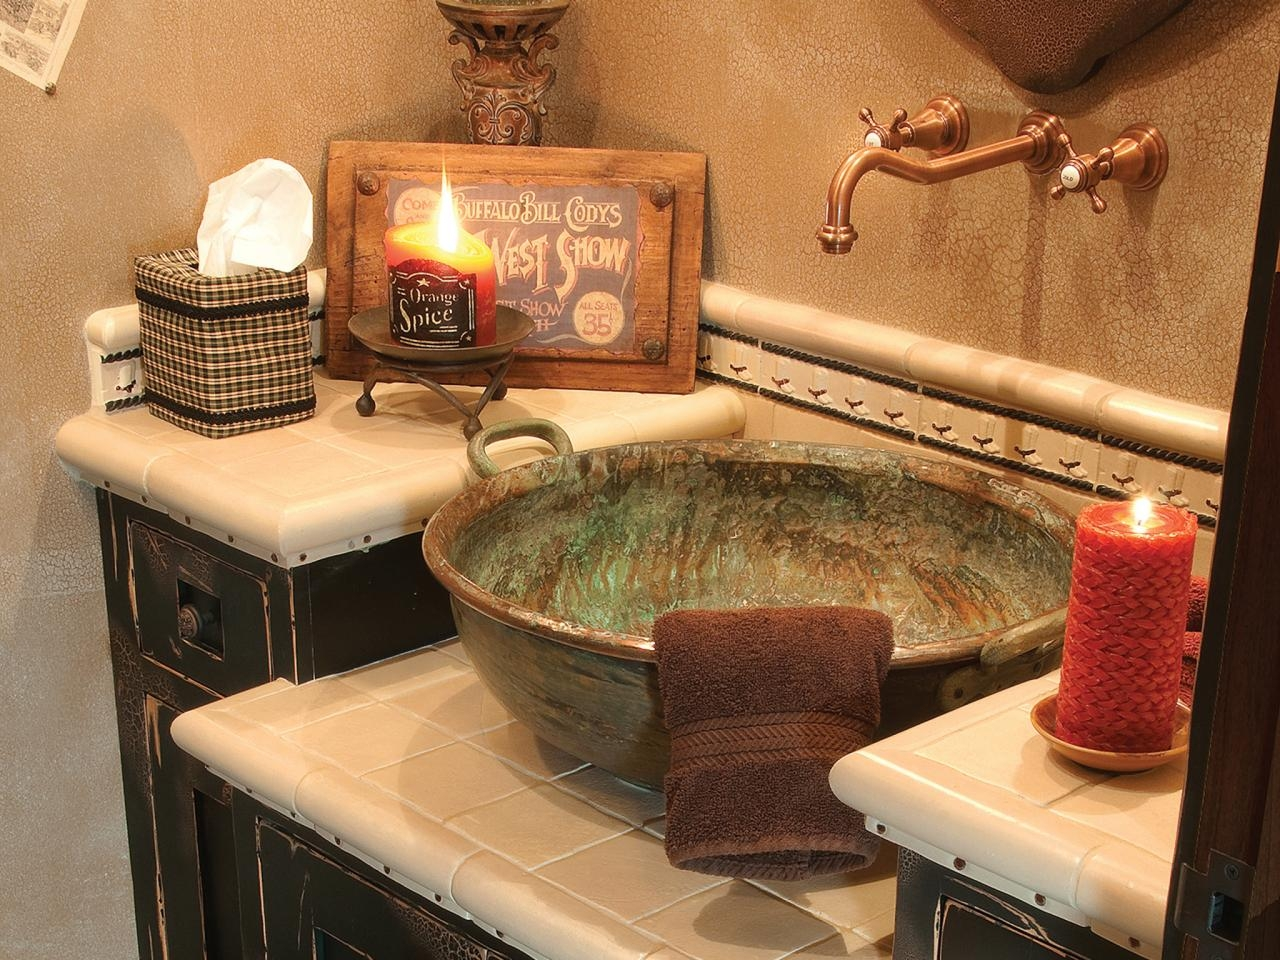 rustic bathroom sinks and faucets rustic bathroom sinks and faucets rustic bathroom sinks bathroom sinks decoration 1280 x 960 jpeg